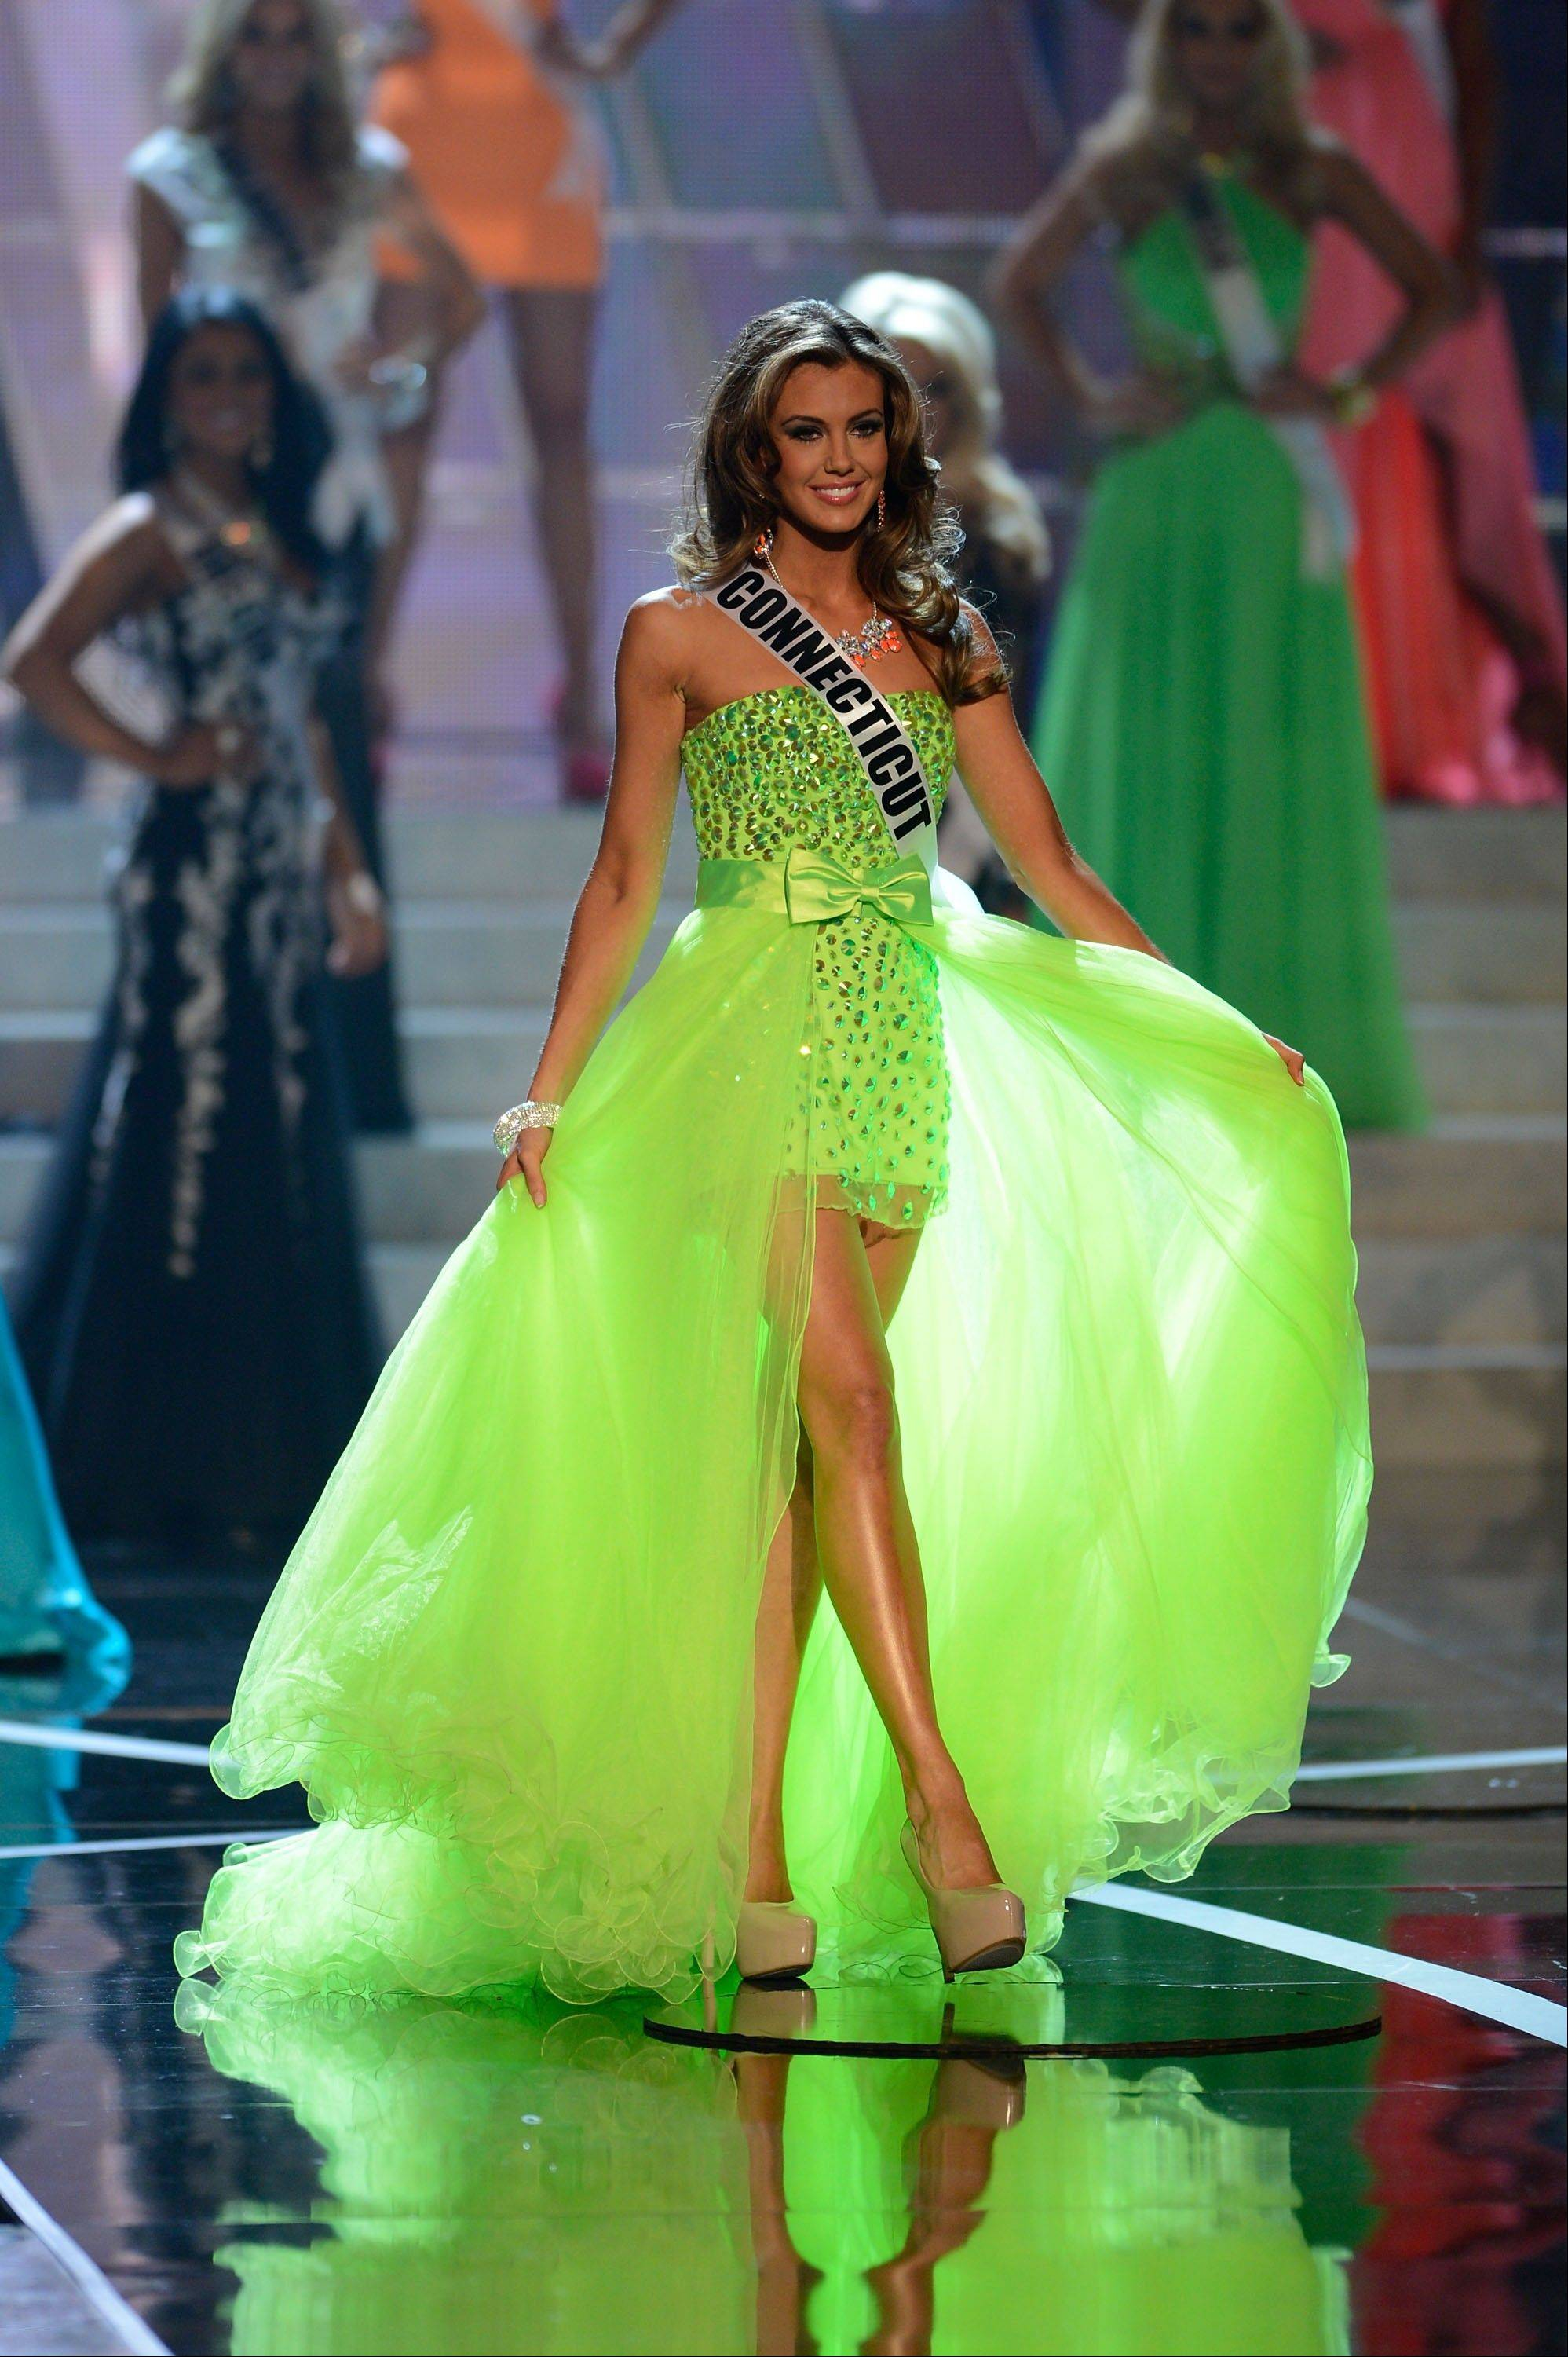 Miss Connecticut wins Miss USA title